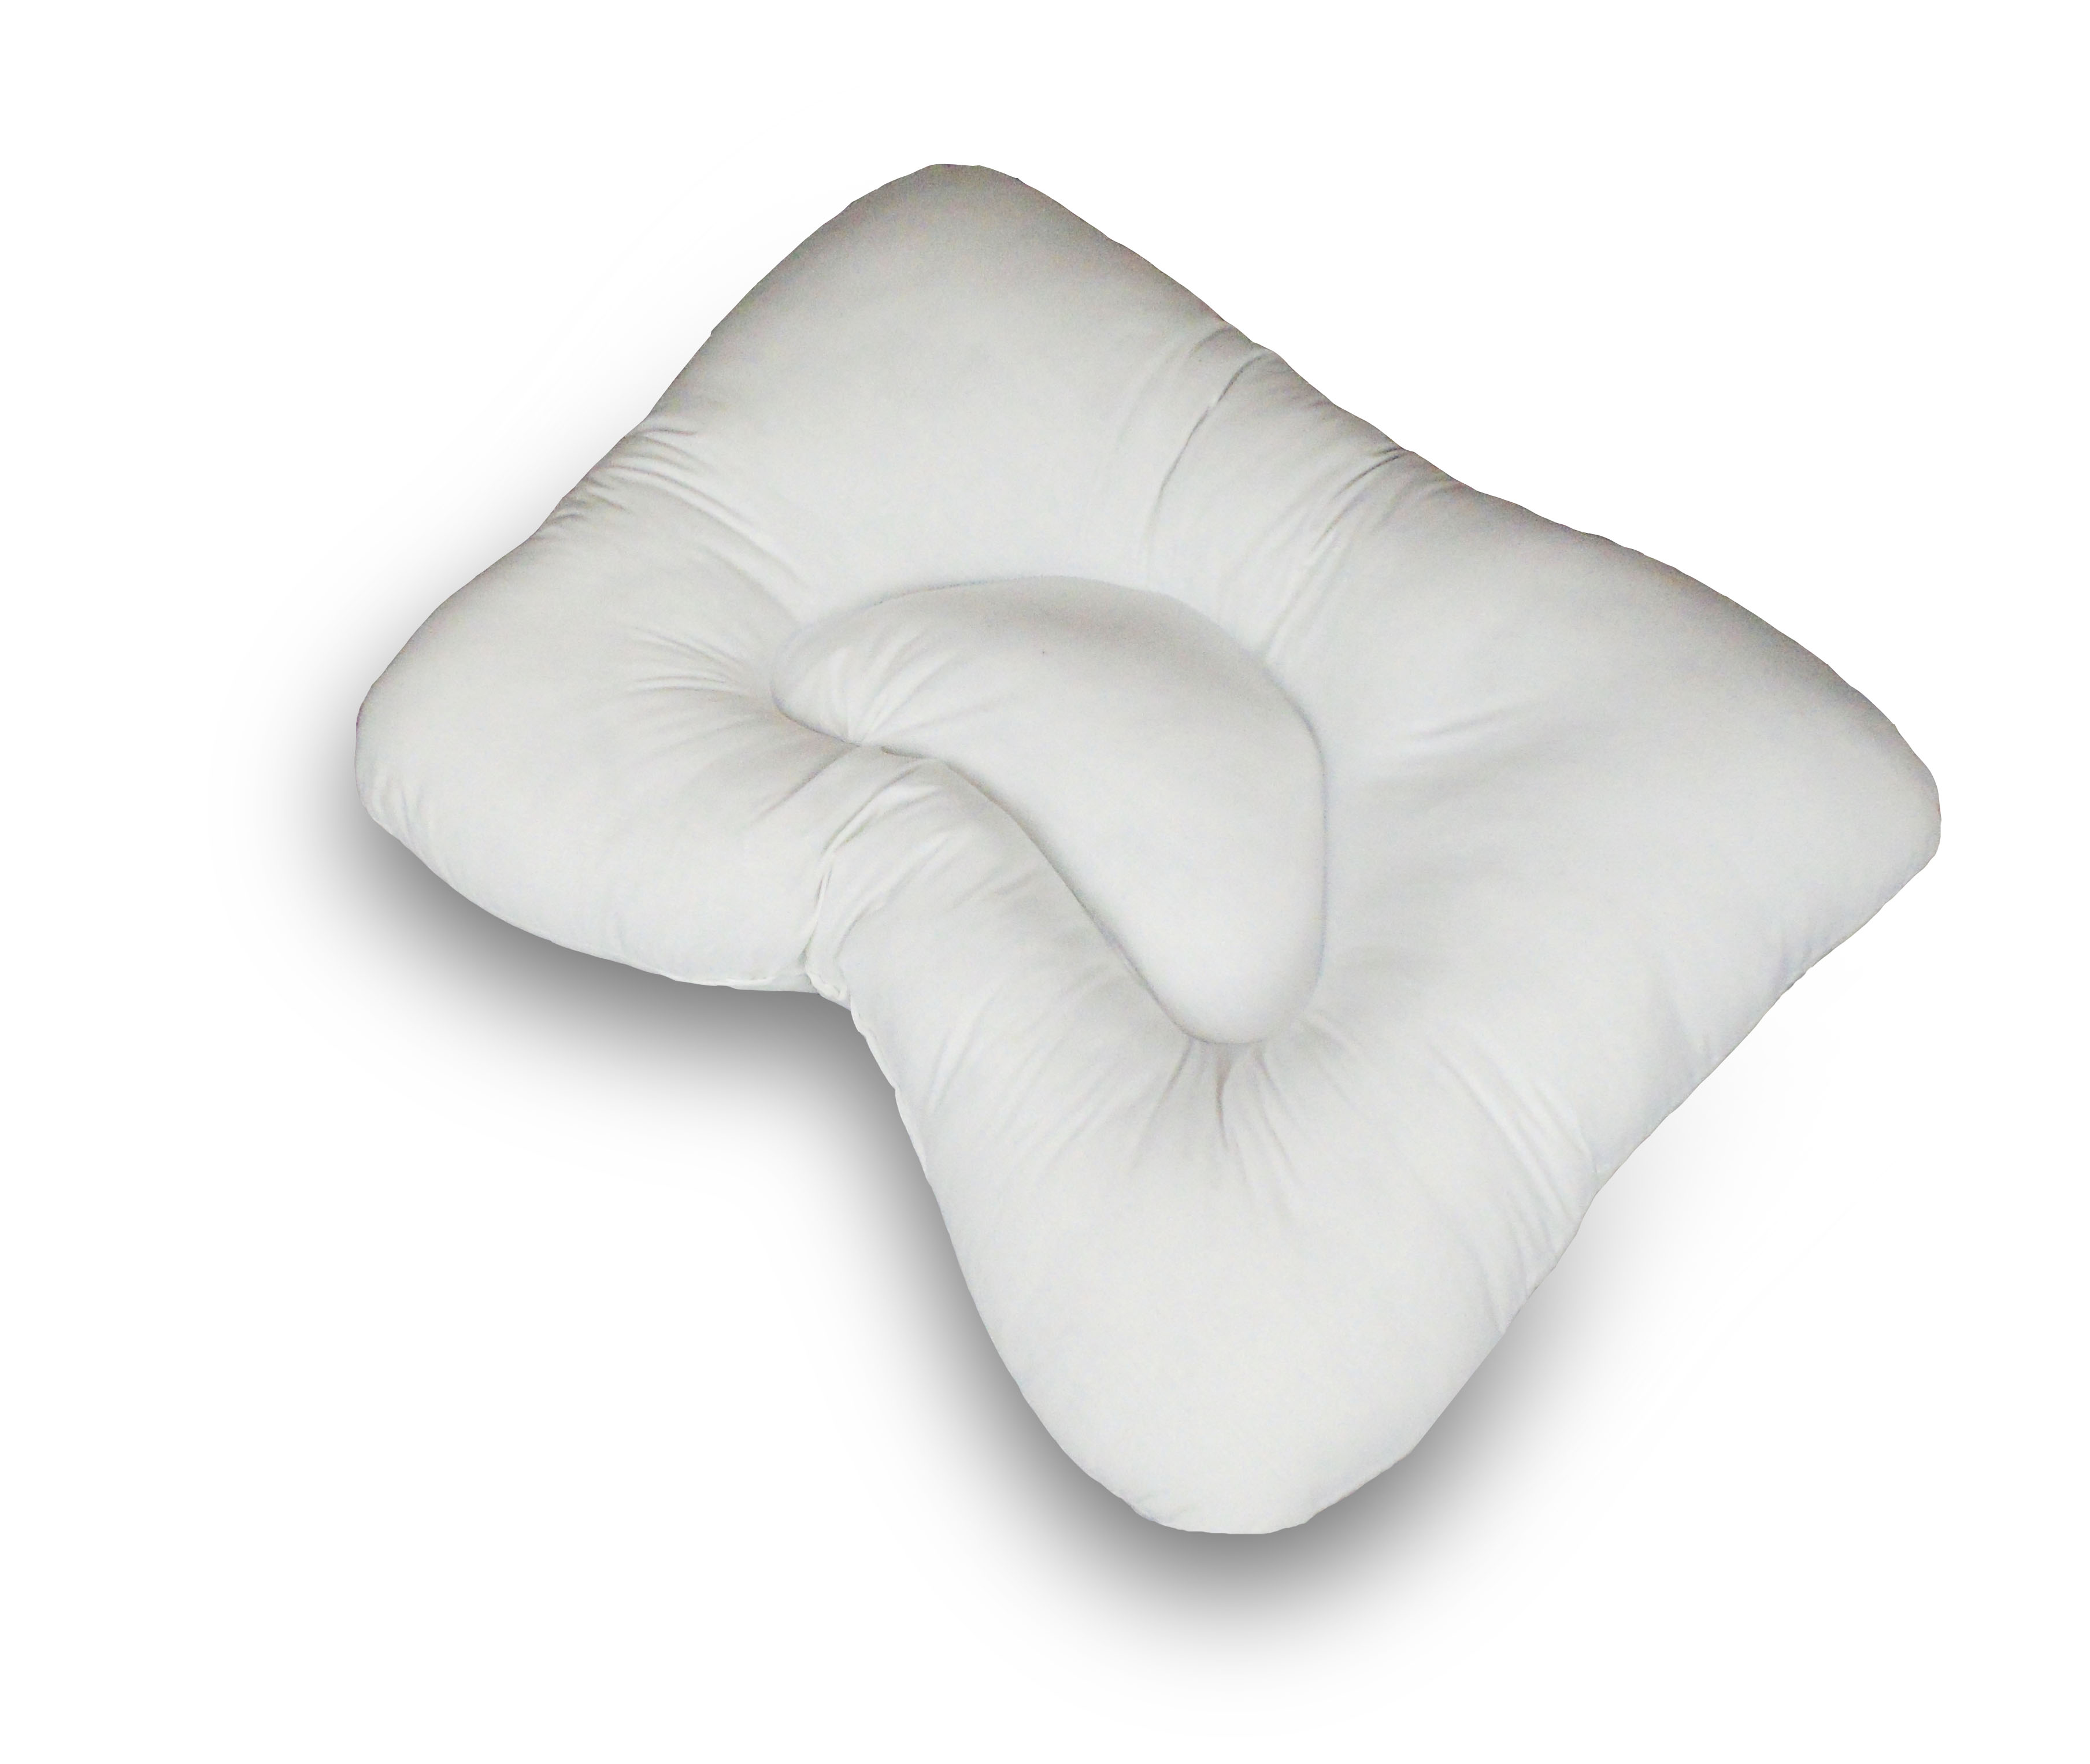 Cervical Neck Support Pillow Carousel Care